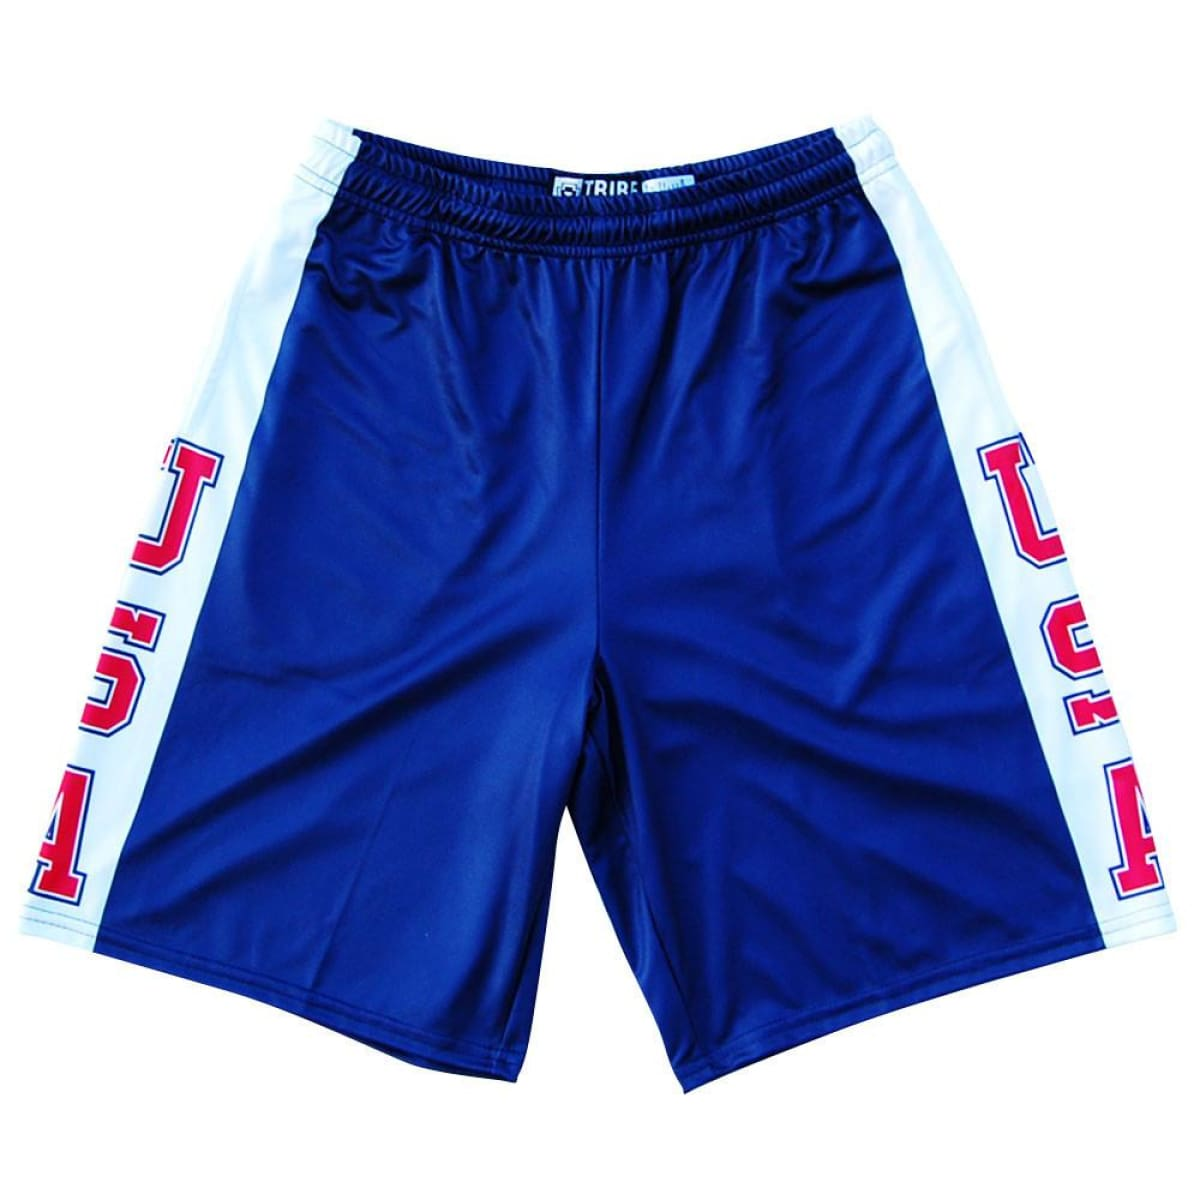 USA Sideline Lacrosse Shorts - Navy / Youth X-Small - Tribe Lacrosse Shorts